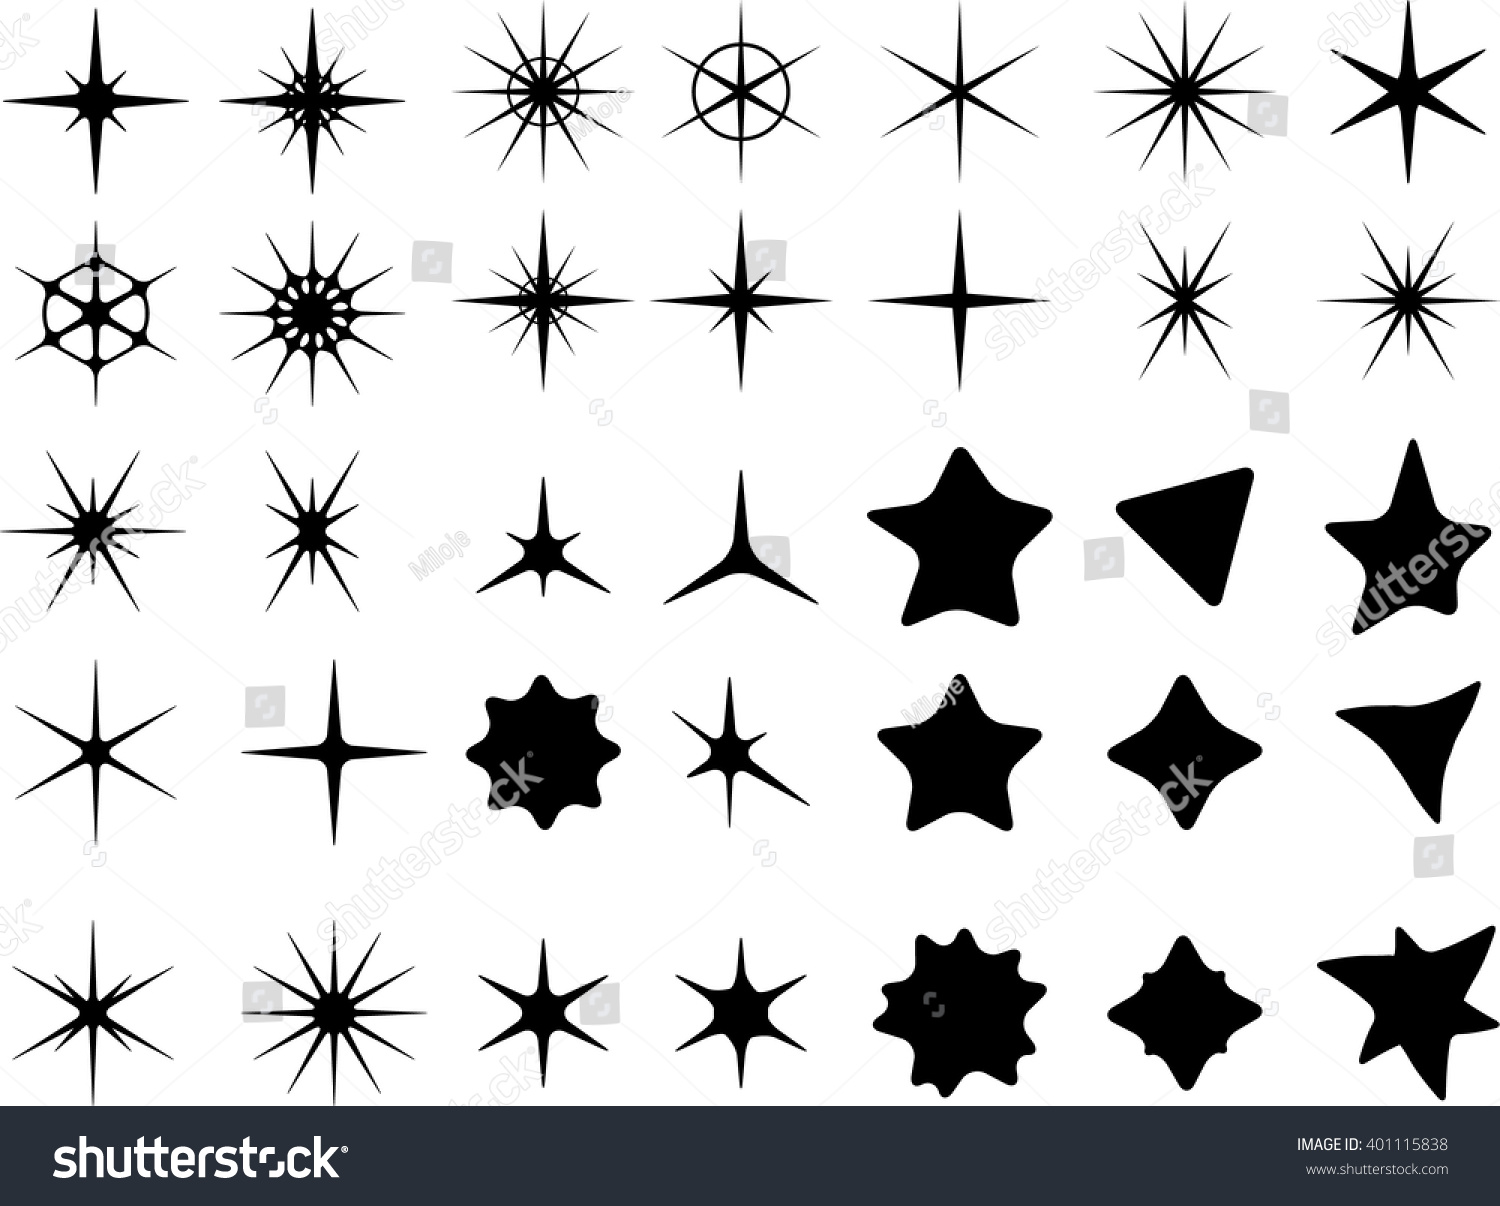 Isolated on white background star symbols stock vector 401115838 isolated on a white background star symbols buycottarizona